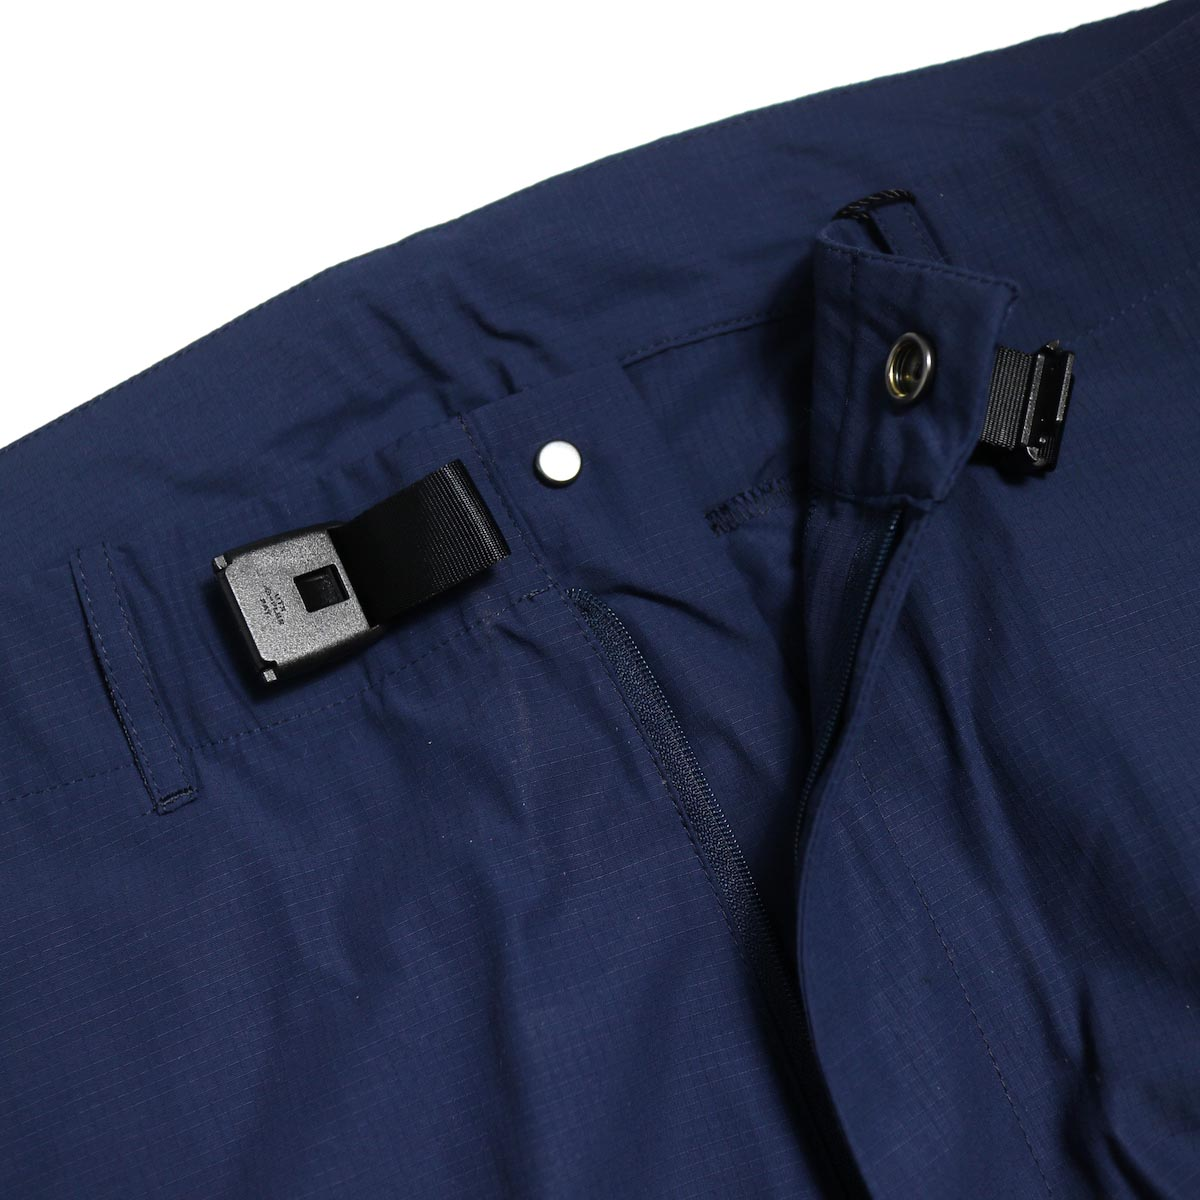 DESCENTE ddd / UNIFIT PANTS -NAVY イージーベルト